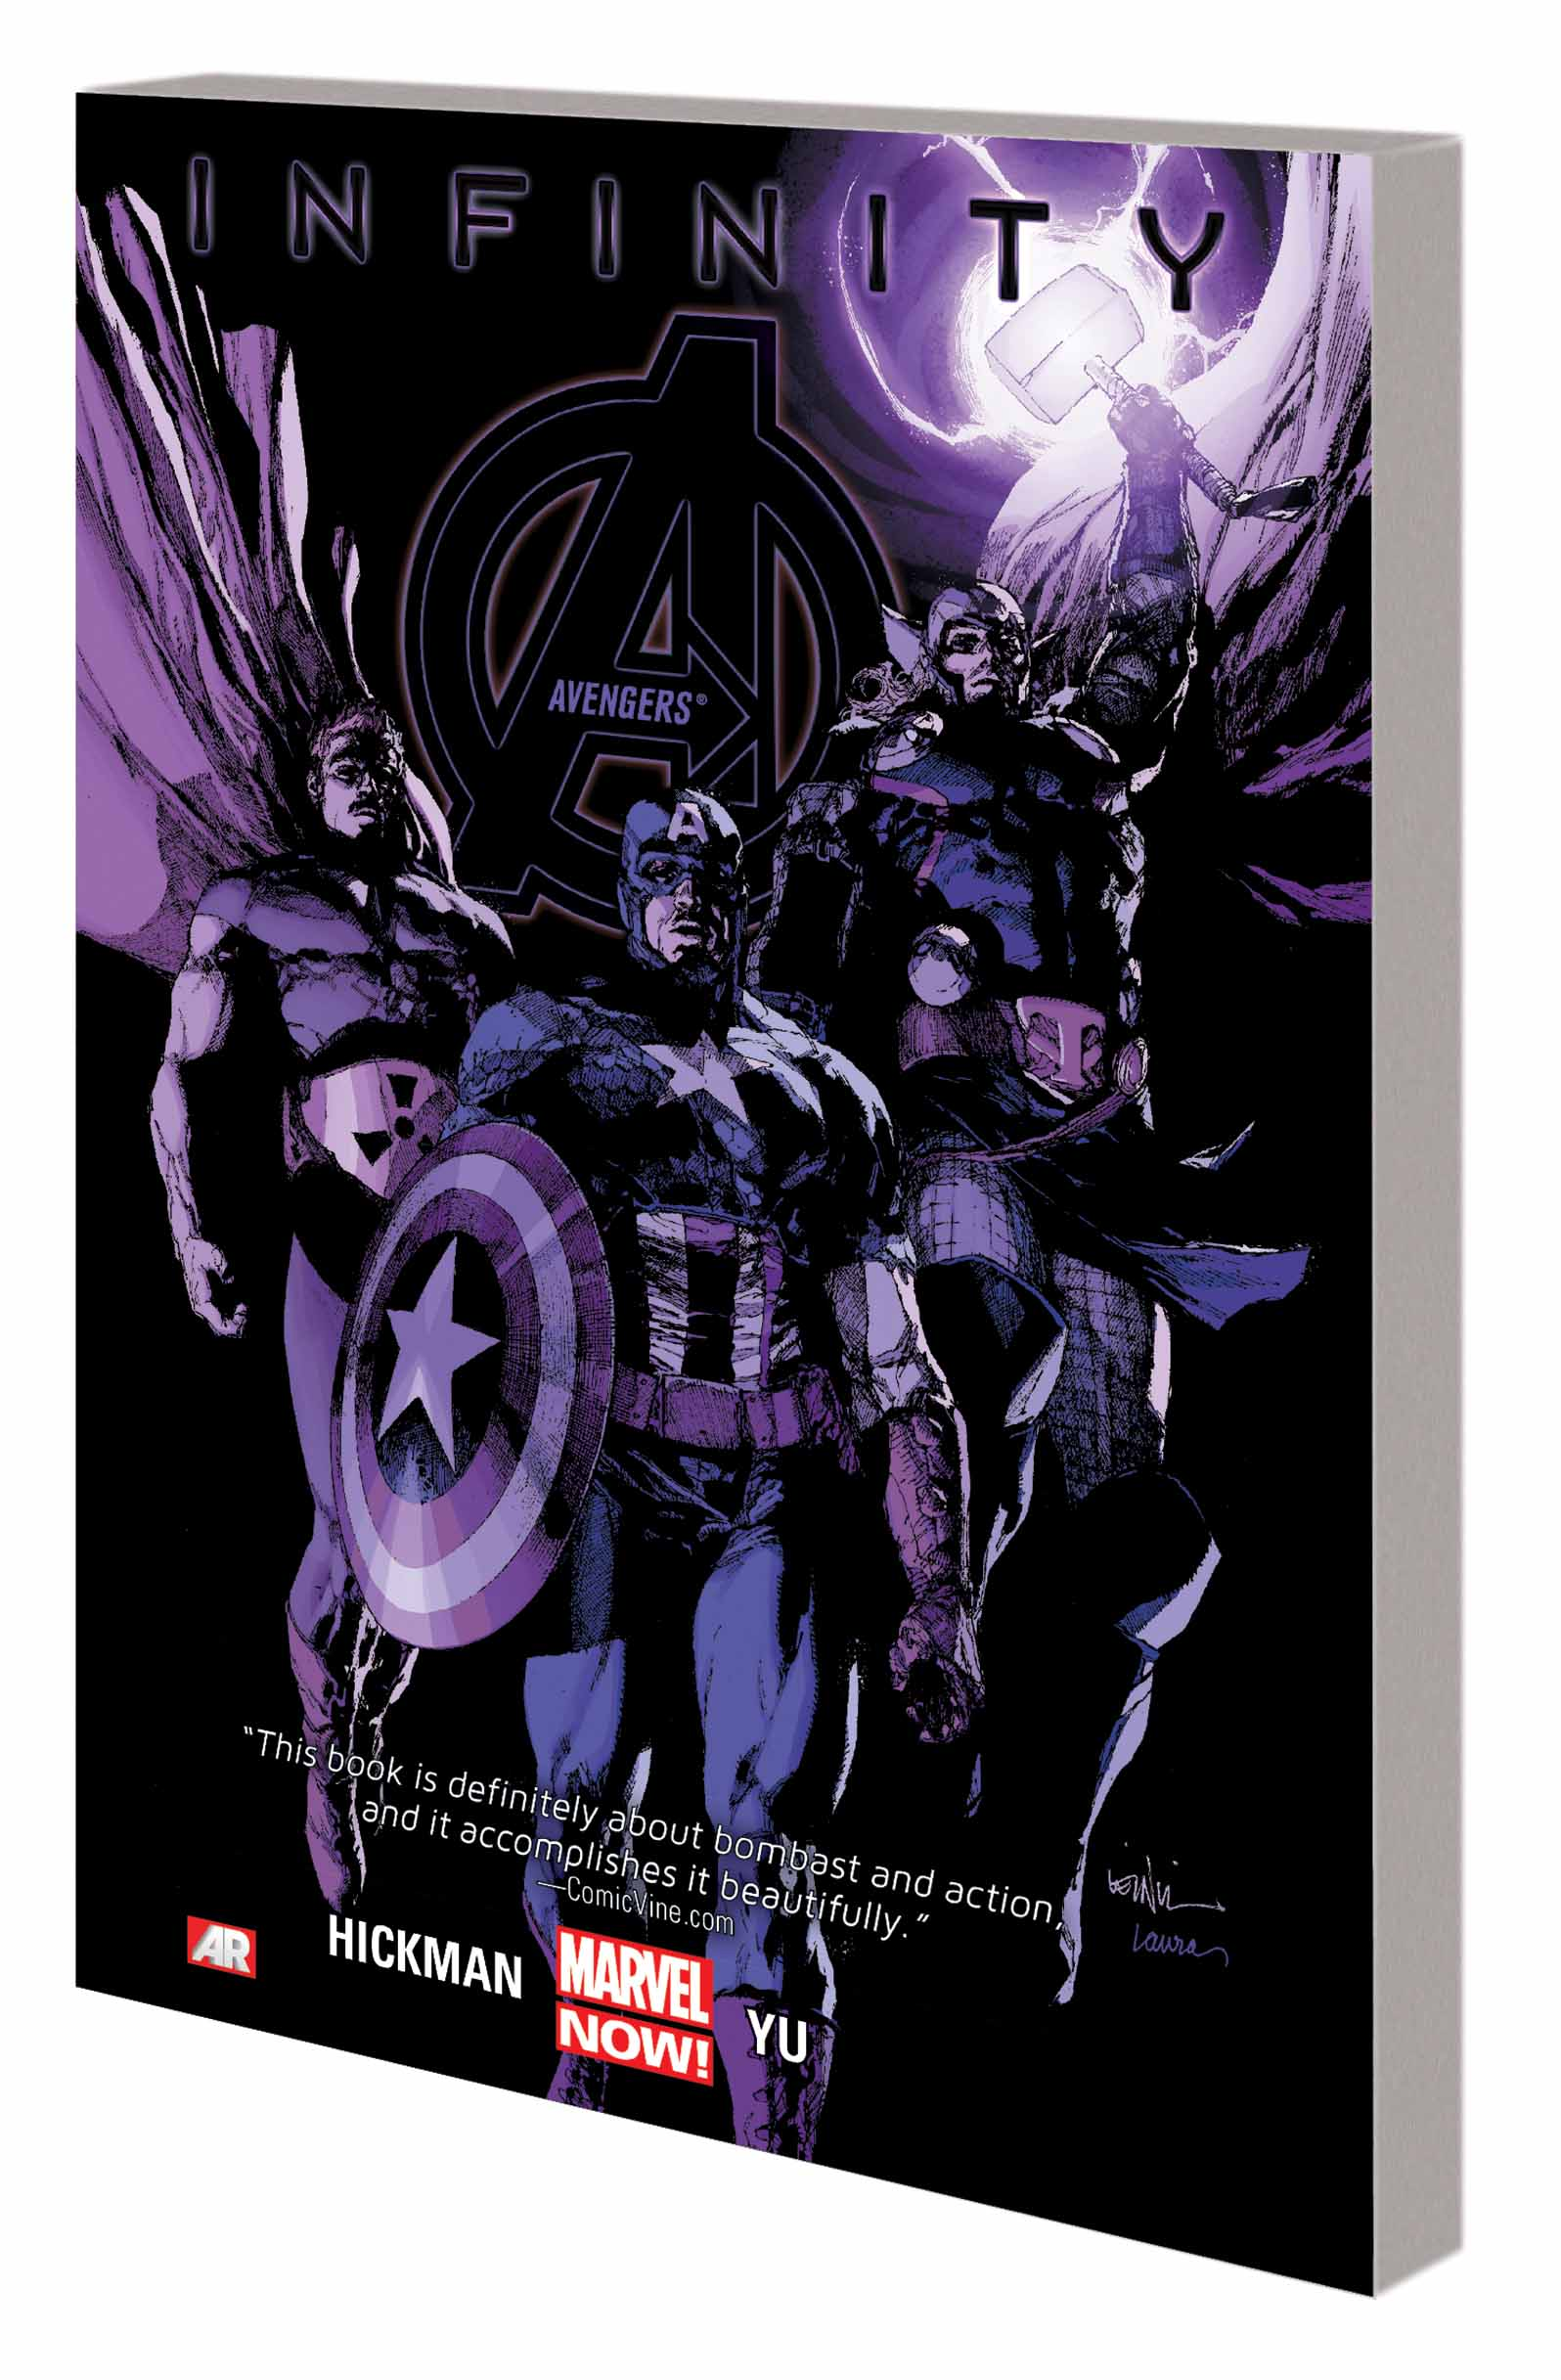 AVENGERS VOL. 4: INFINITY TPB  (Trade Paperback)